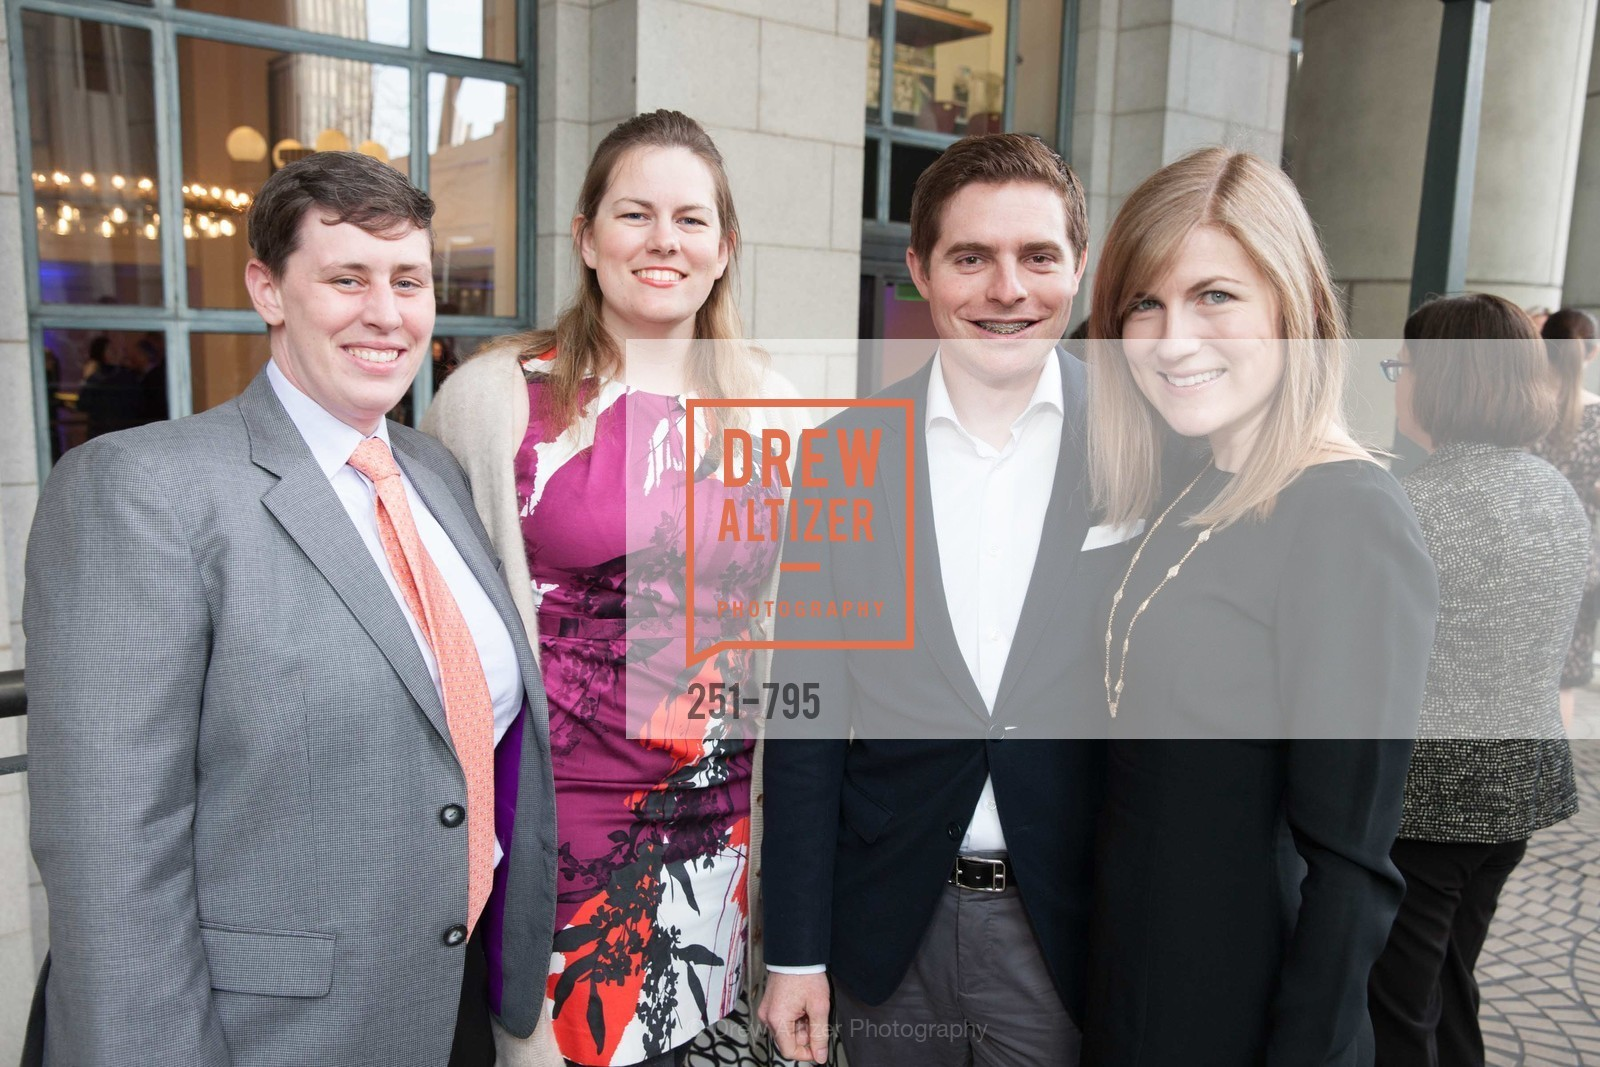 Jessica Milligan, Claire Milligan, Drew Wall, Lindsey Milligan Wall, COMPASS FAMILY SERVICES Annual Spring Benefit:  Every Family Needs A Home, US, April 23rd, 2015,Drew Altizer, Drew Altizer Photography, full-service event agency, private events, San Francisco photographer, photographer California